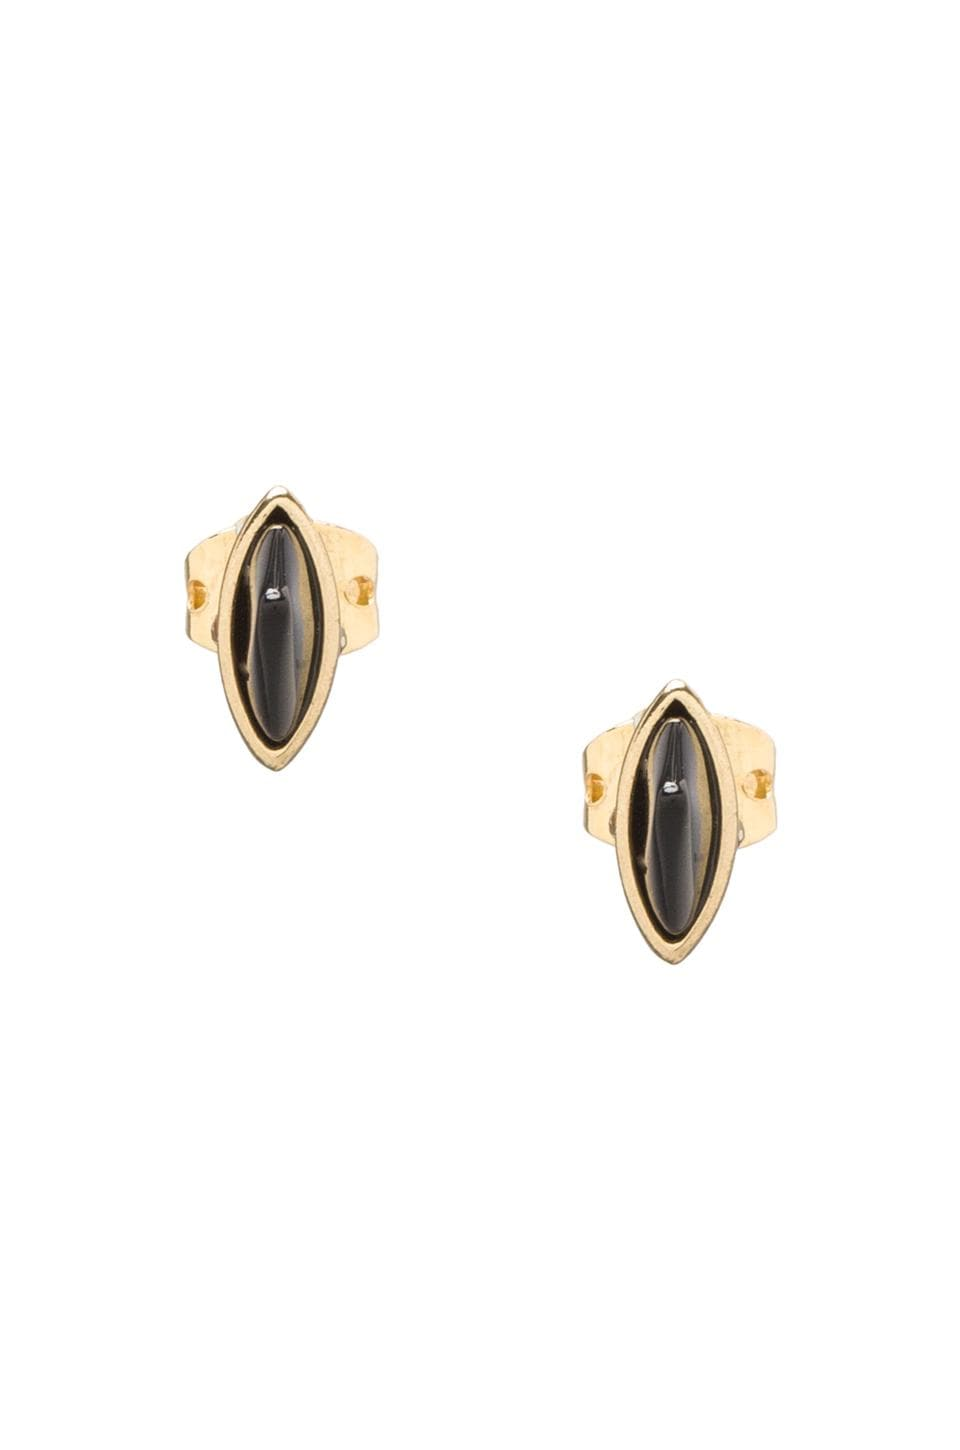 House of Harlow 1960 House of Harlow Rock Out Studs in Gold/Black Onyx